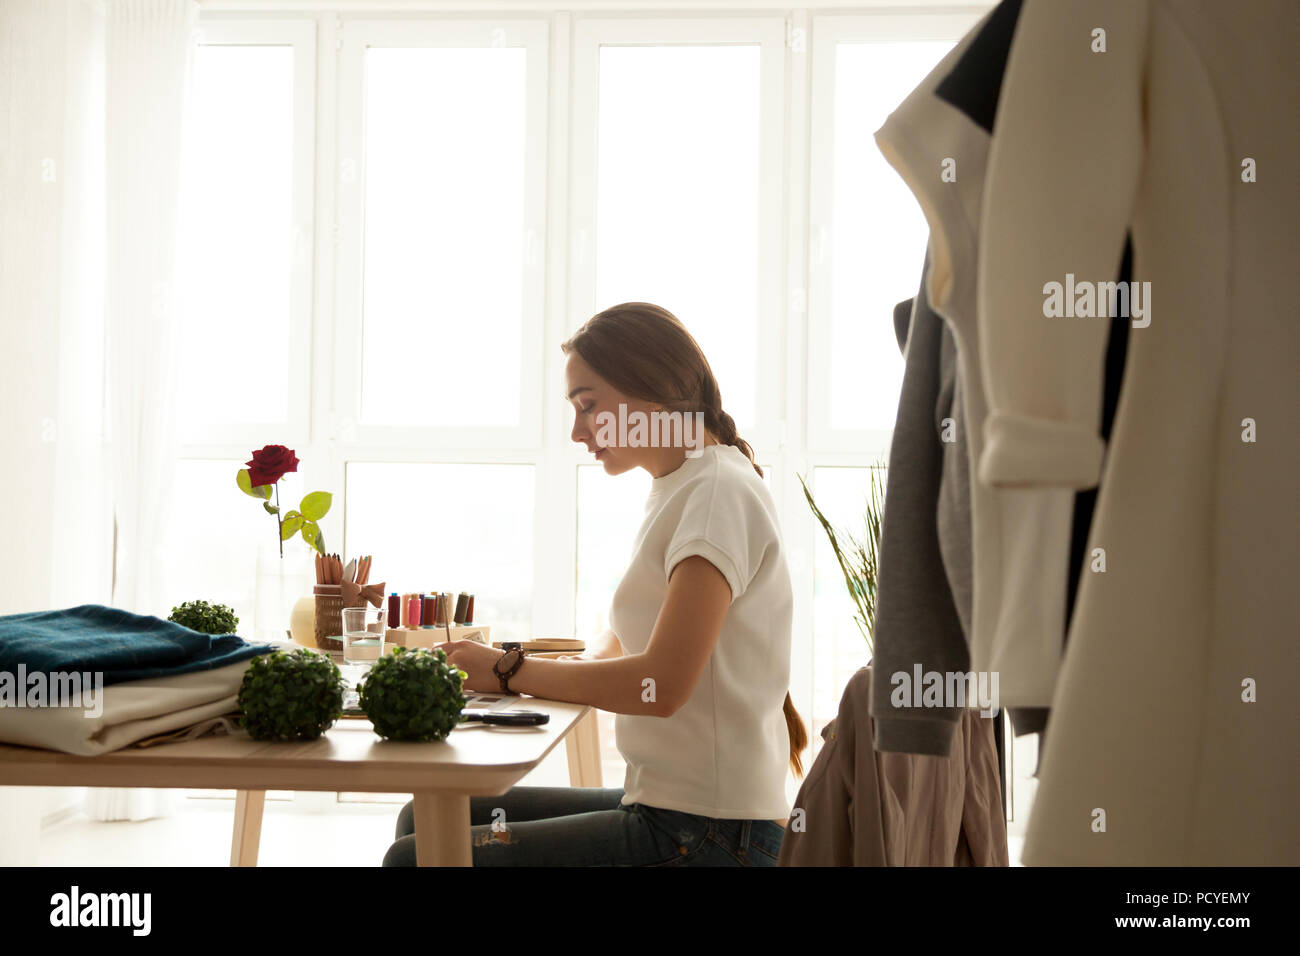 Serious fashion designer creating new collection in her studio - Stock Image